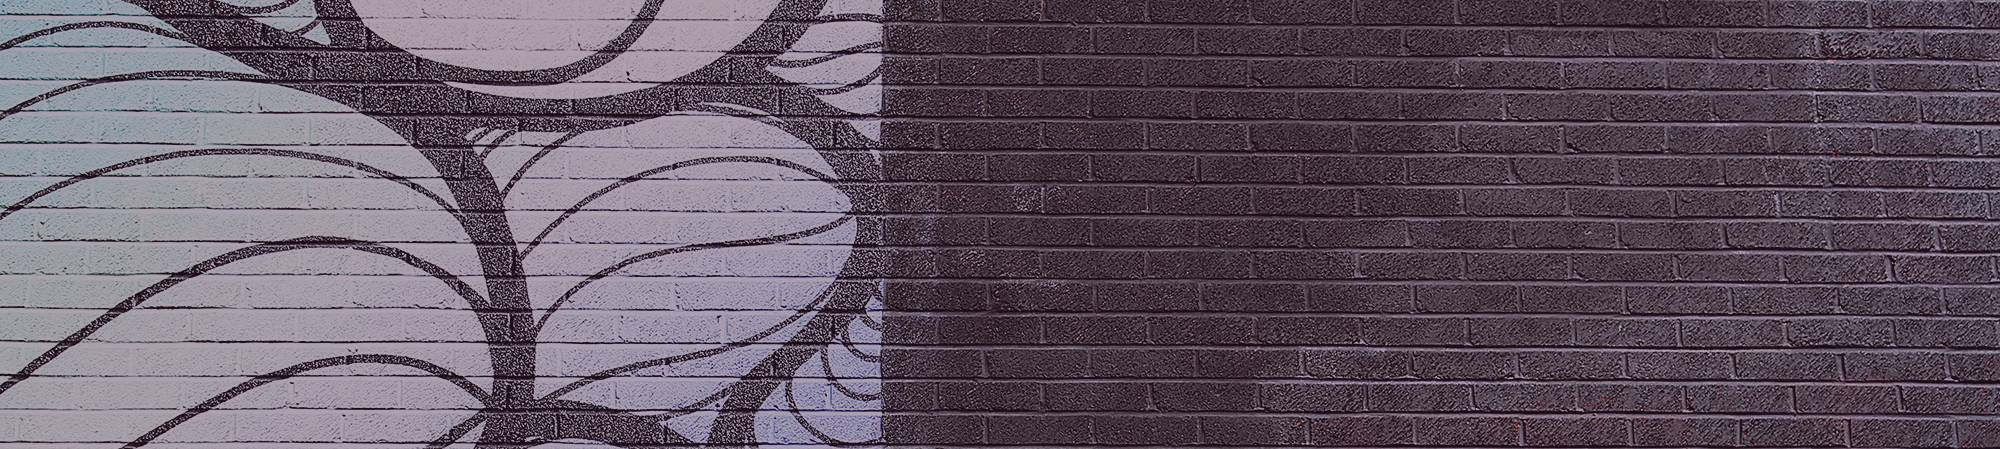 grafitti-brick-wall-overlay-purple